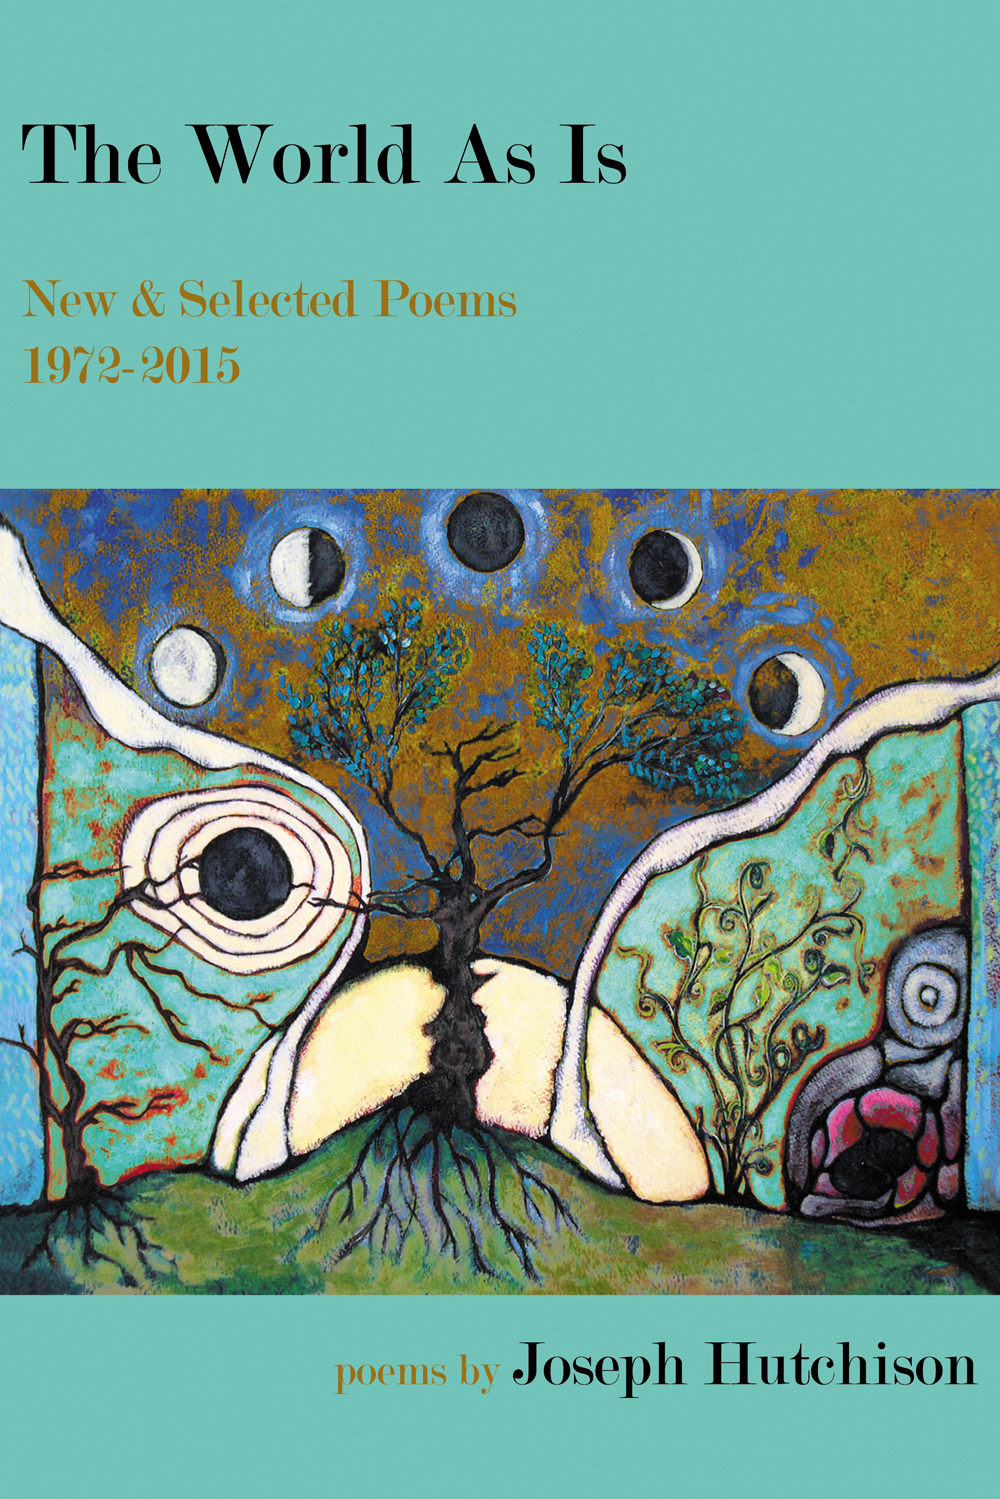 The World As Is: New & Selected Poems, 1972-2015